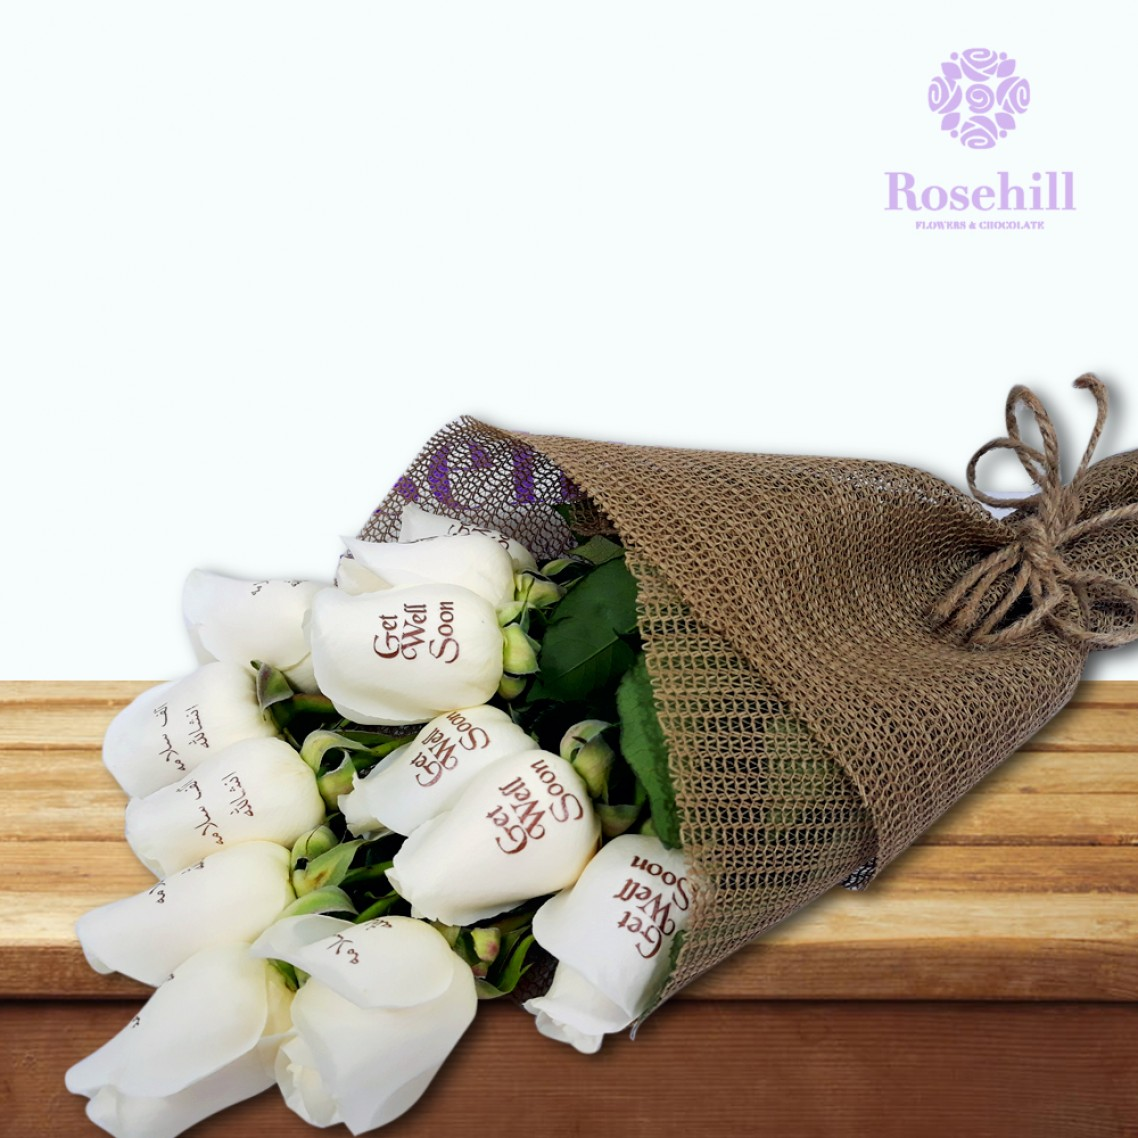 1524672913-h-250-_Rosehill's Get Well Soon Bouquet- White.jpg